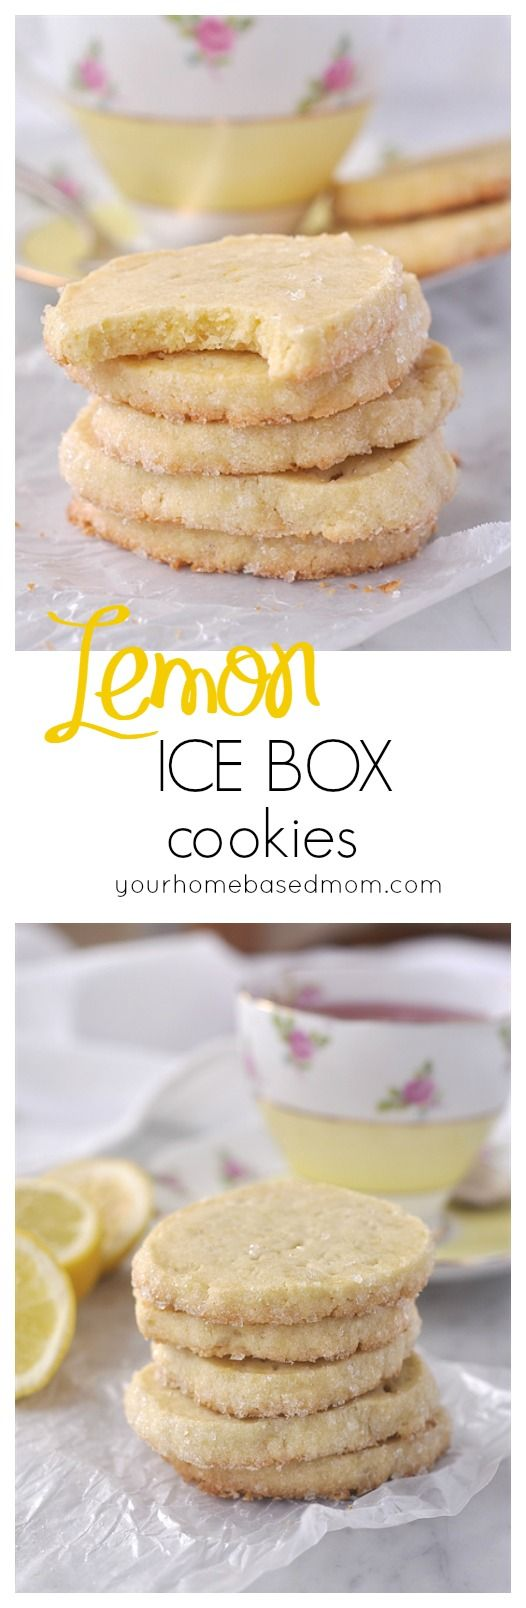 Lemon Ice Box Cookies are light, lovely and delicious!